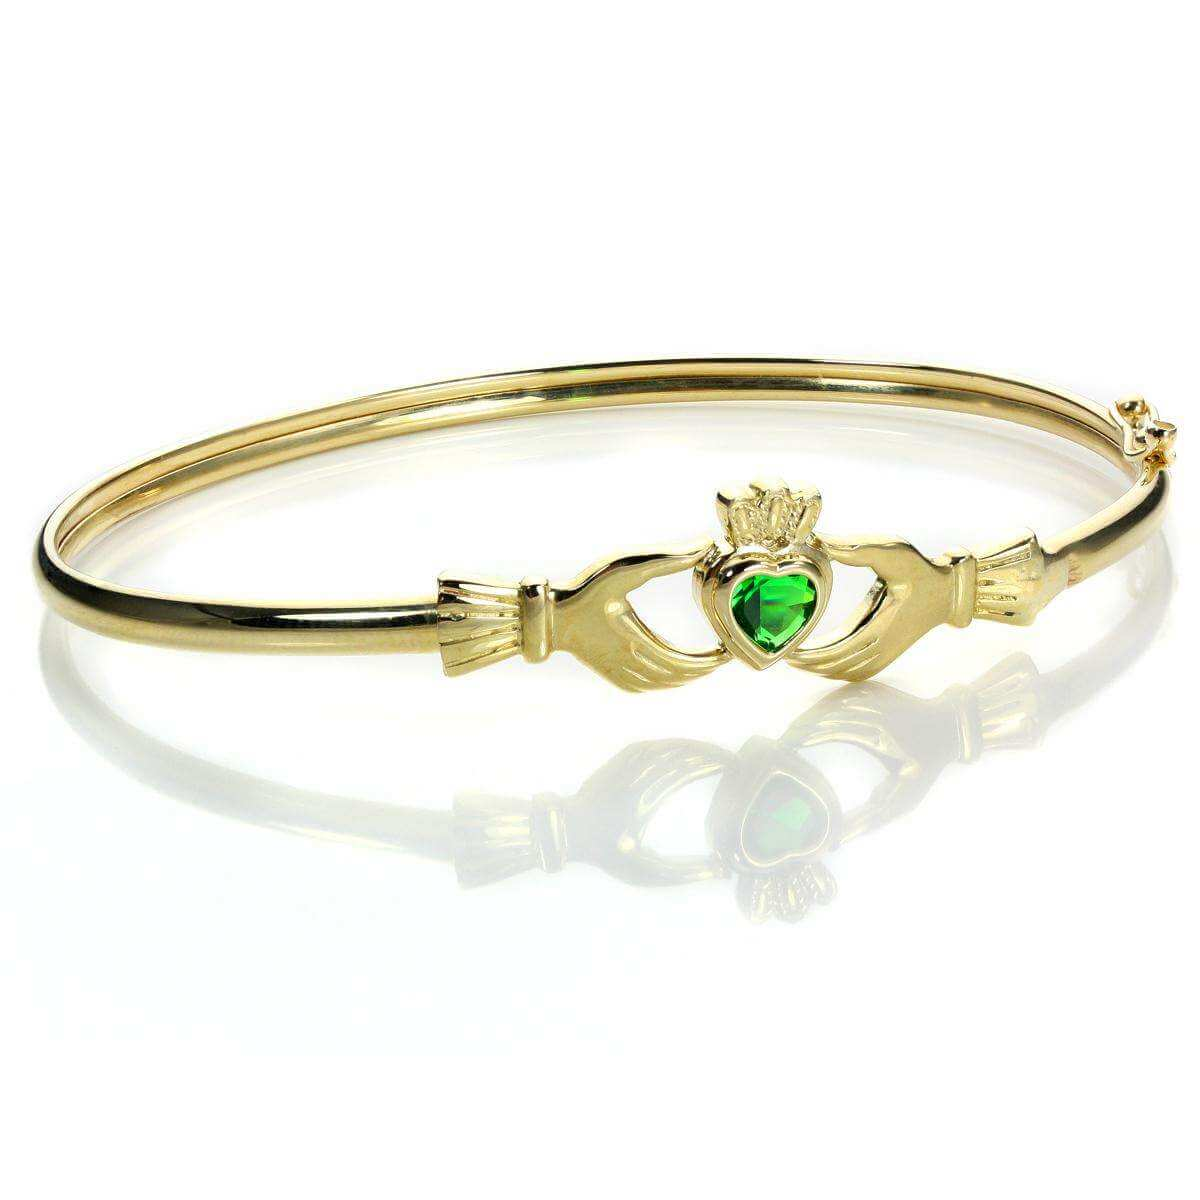 9ct Gold Stone Set Claddagh Bangle